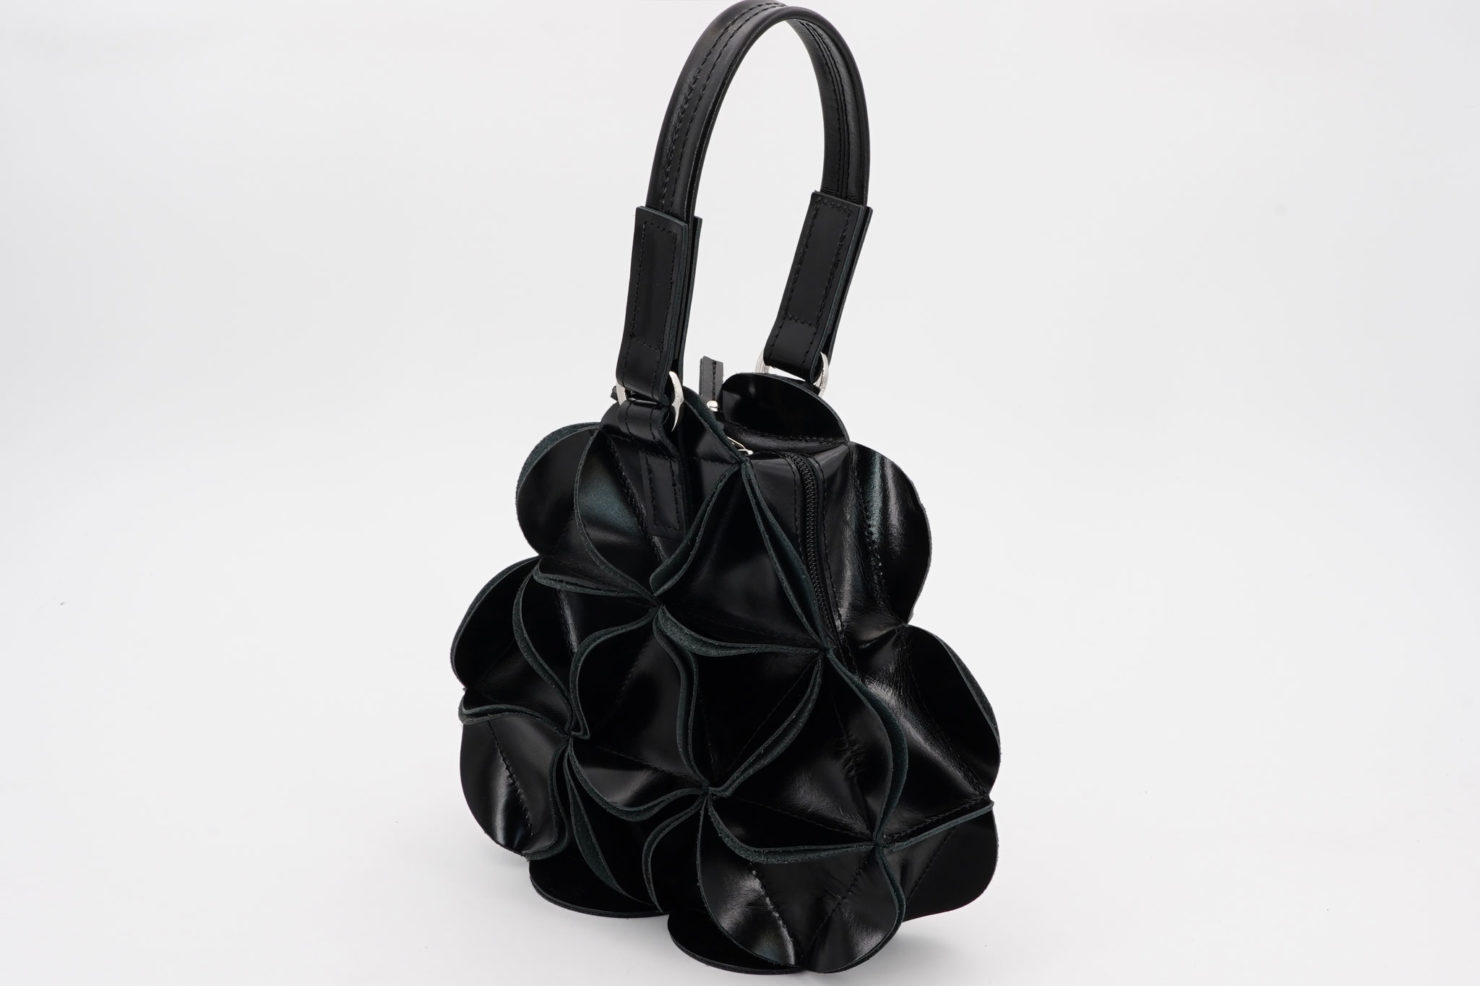 BLOSSOM TRIANGLE LEATHER HANDBAG S BLACK GOODJOB